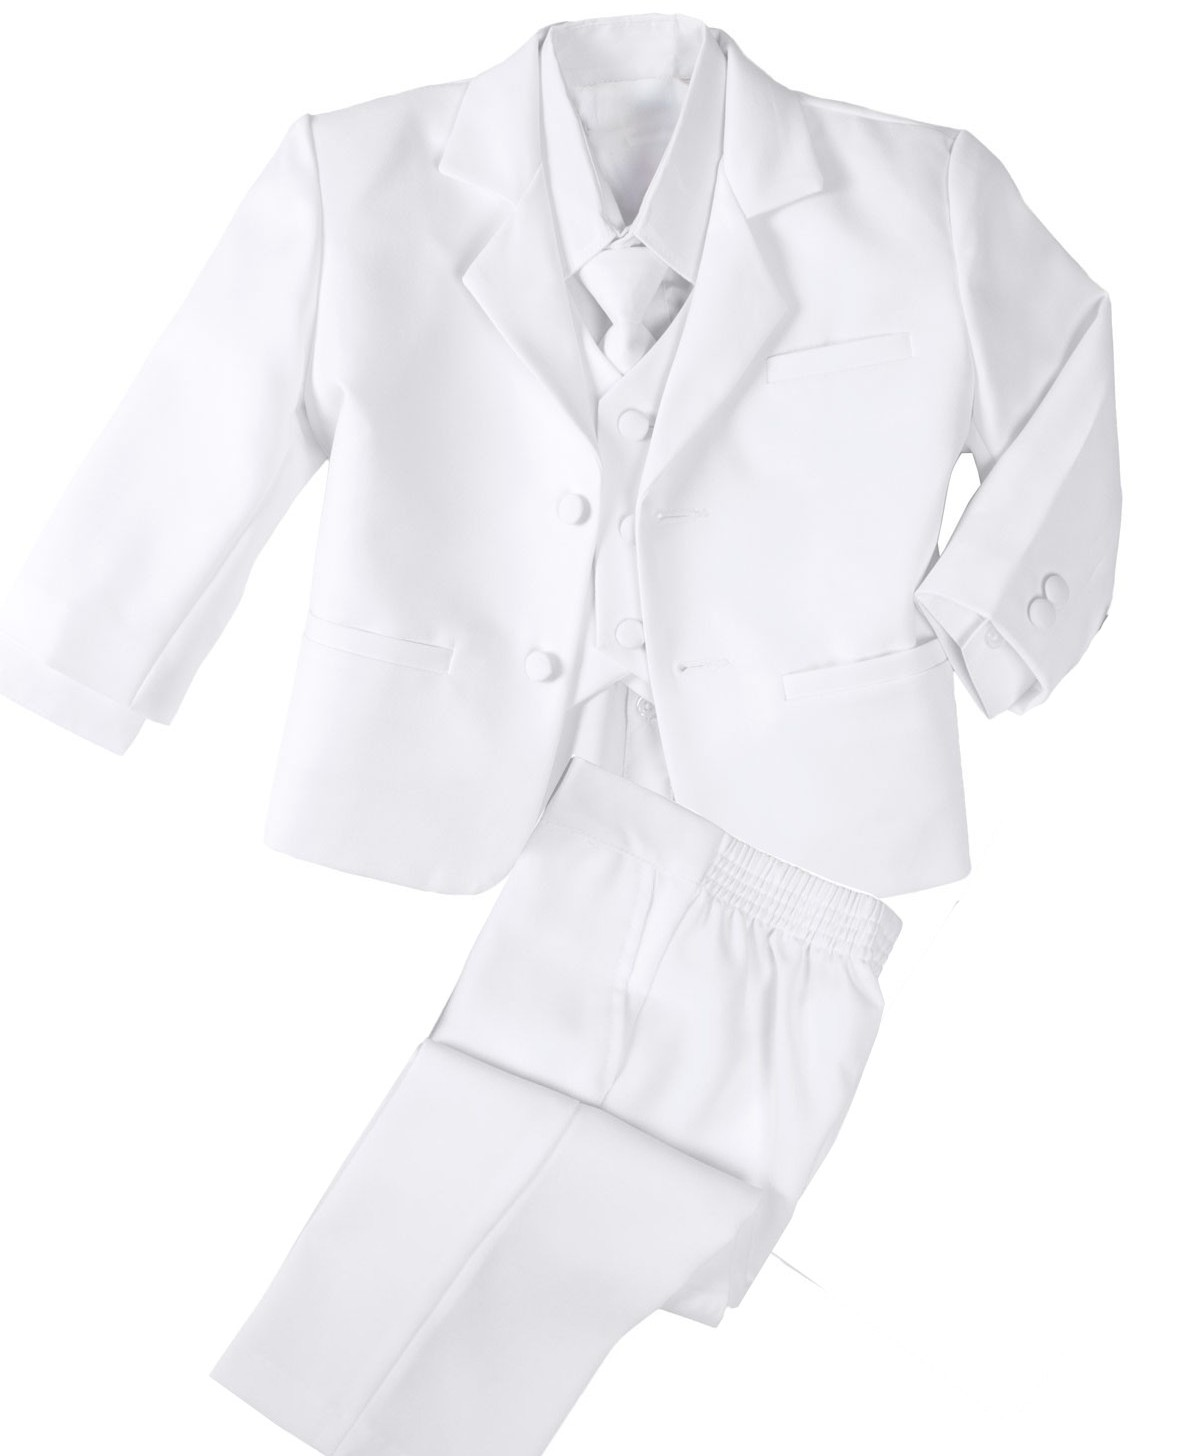 Baby Boys White Bargain Suit